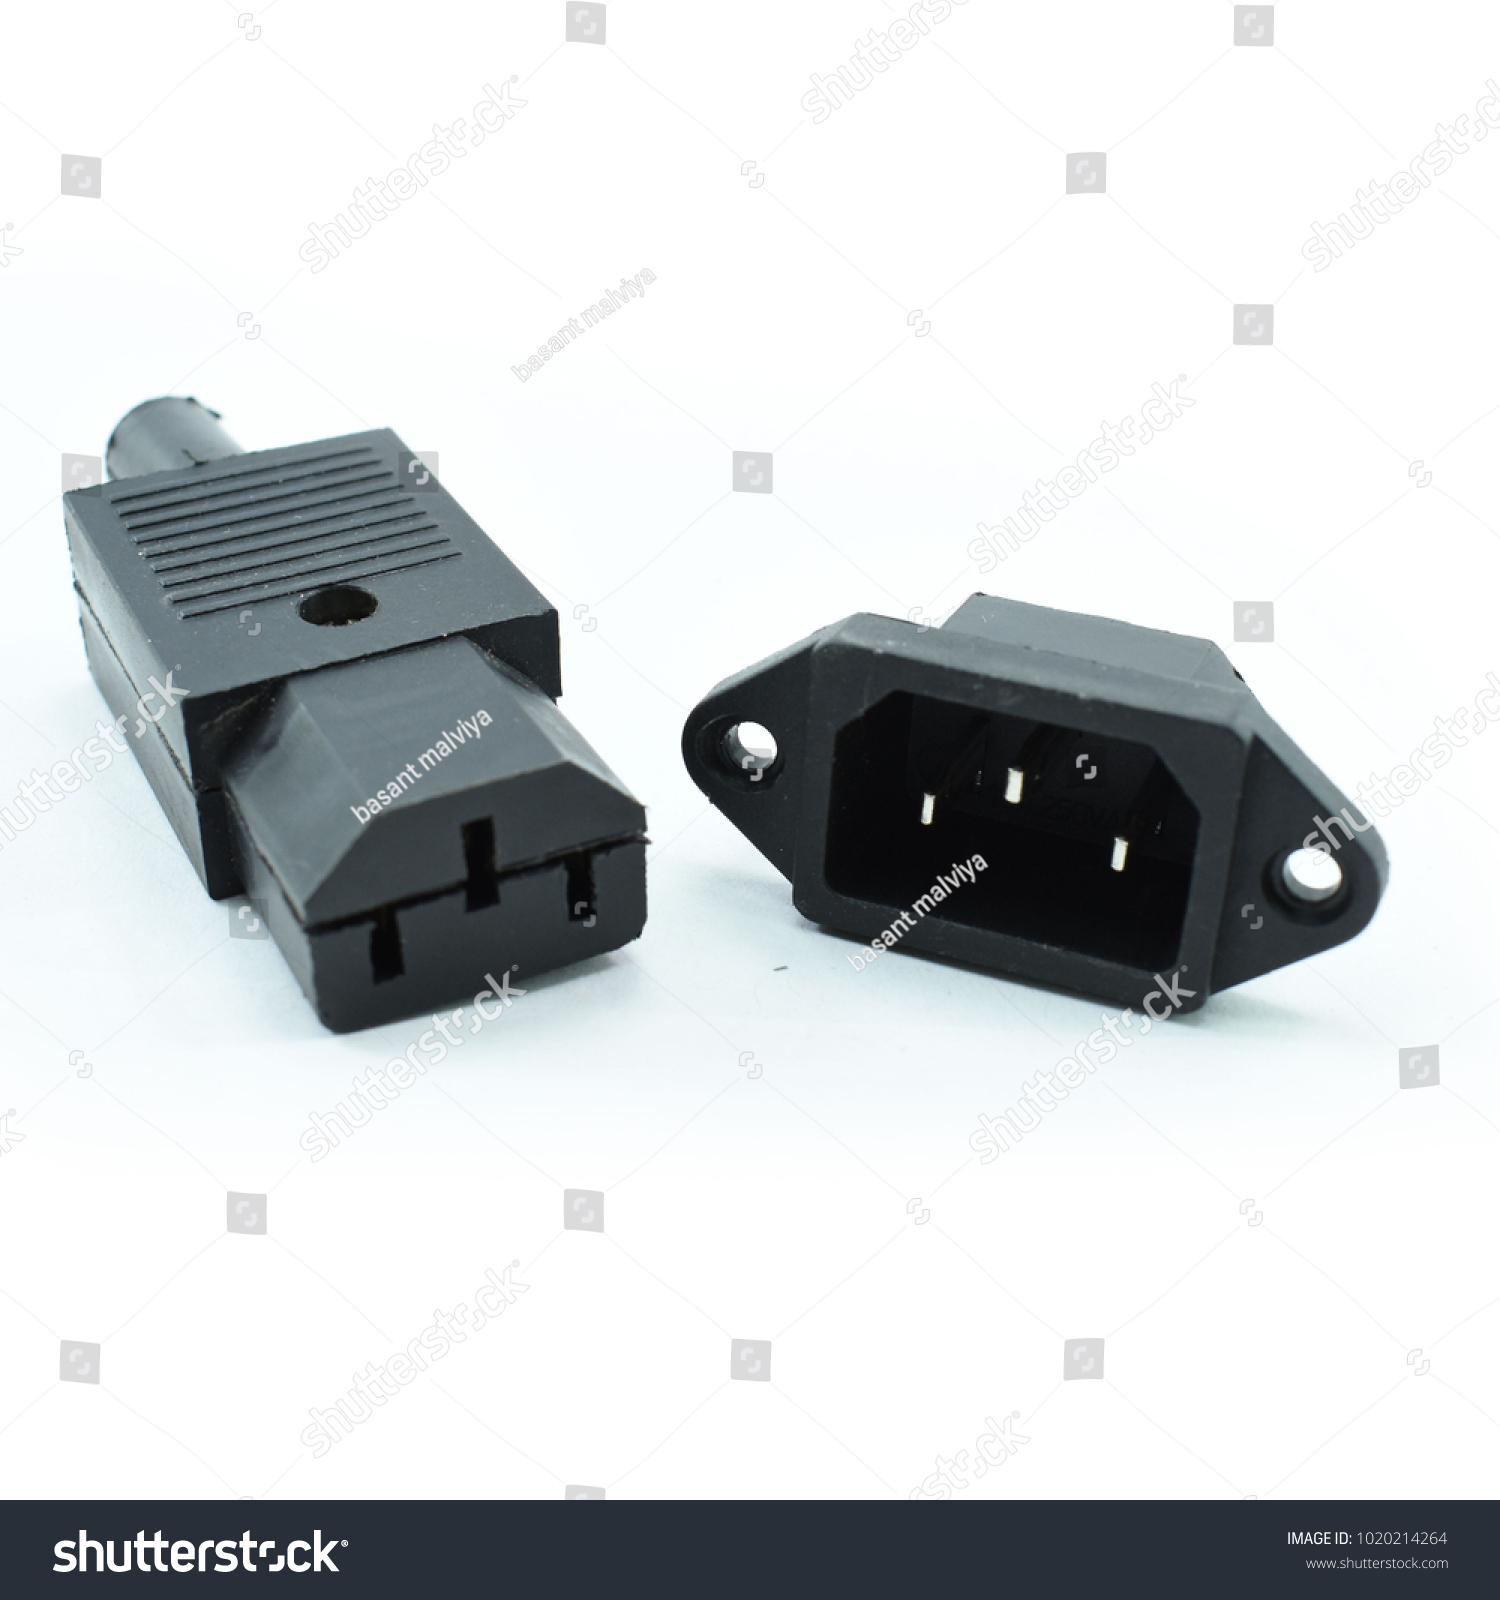 Computer SMPS Connector 3 Pin Socket Stock Photo (Royalty Free ...